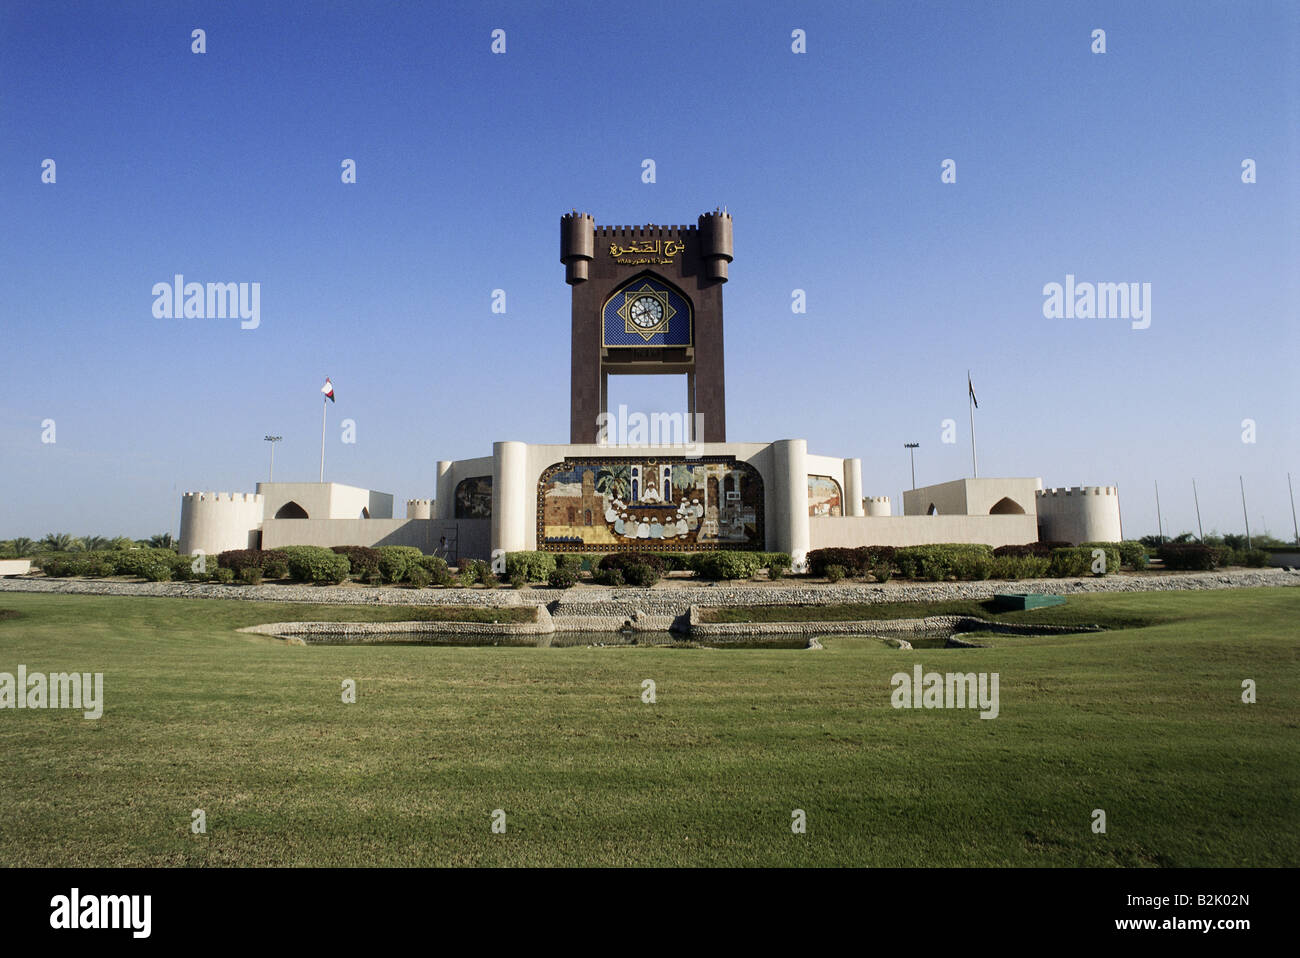 architecture, towers, Oman, watch tower in adobe structure, Capital area, Additional-Rights-Clearance-Info-Not-Available - Stock Image